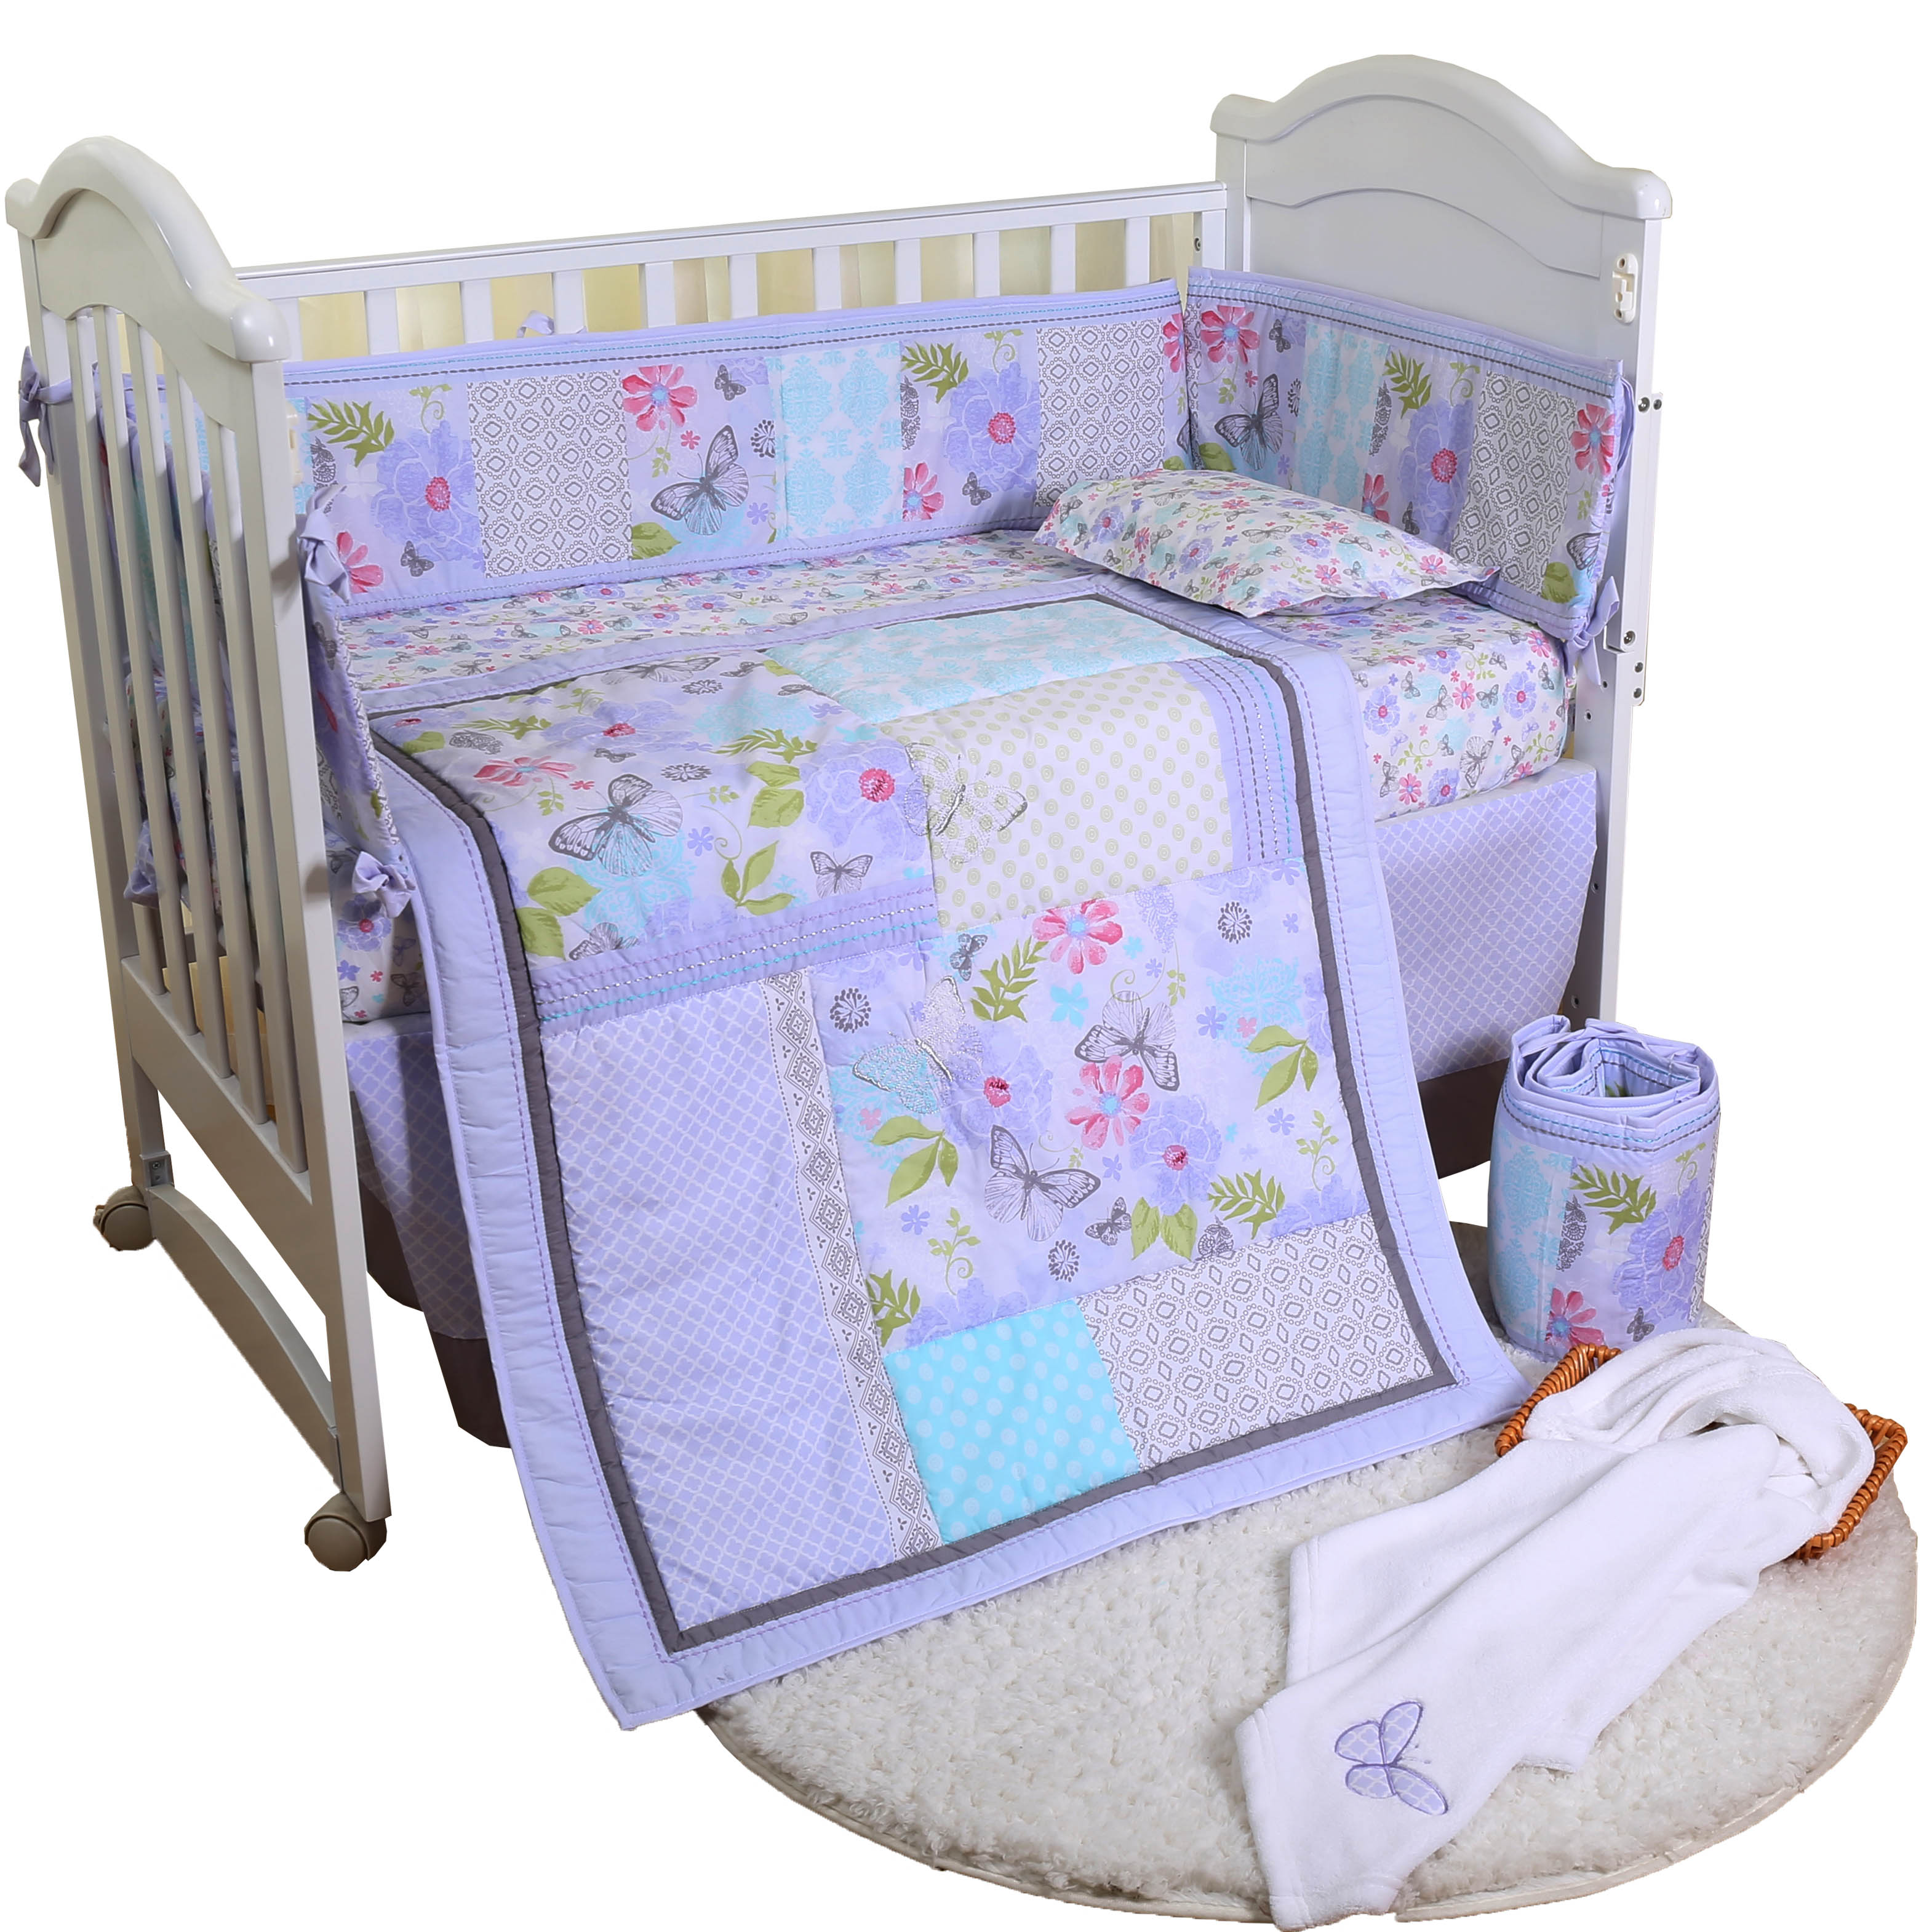 easy cleaning cute new manufactured competitive price 4 piece baby bedding seteasy cleaning cute new manufactured competitive price 4 piece baby bedding set